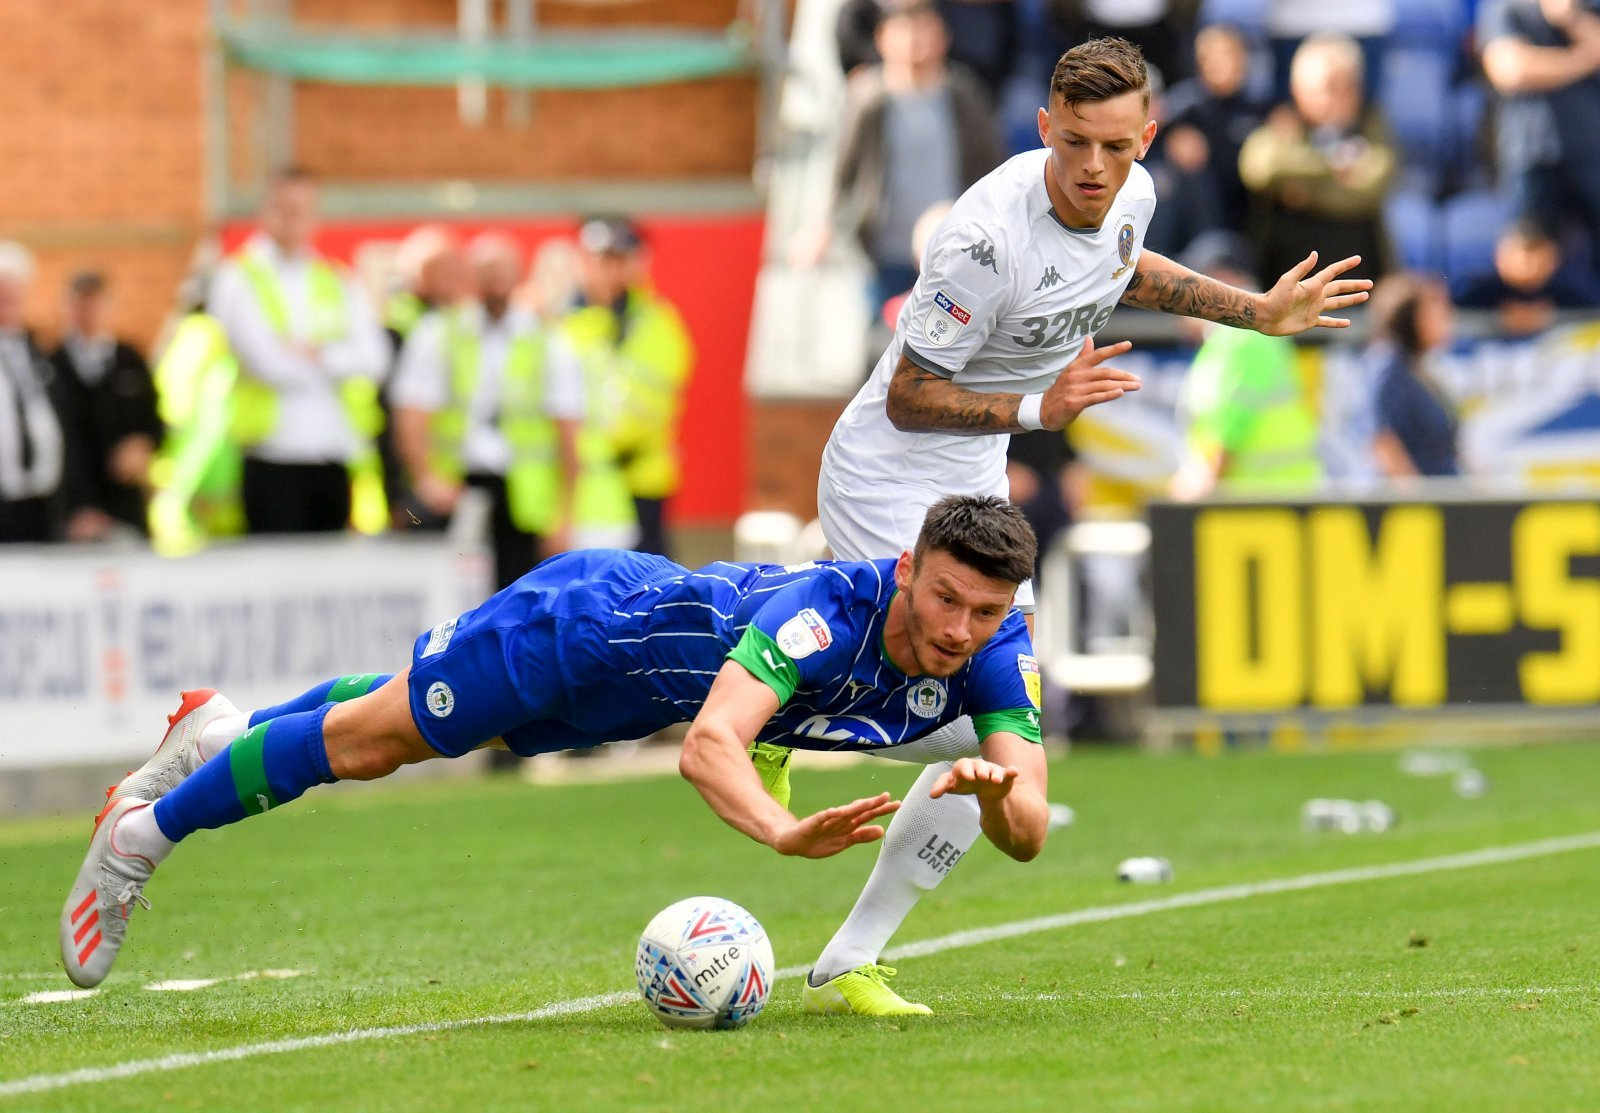 Brighton: Fans react as Ben White is awarded Player of the Month award